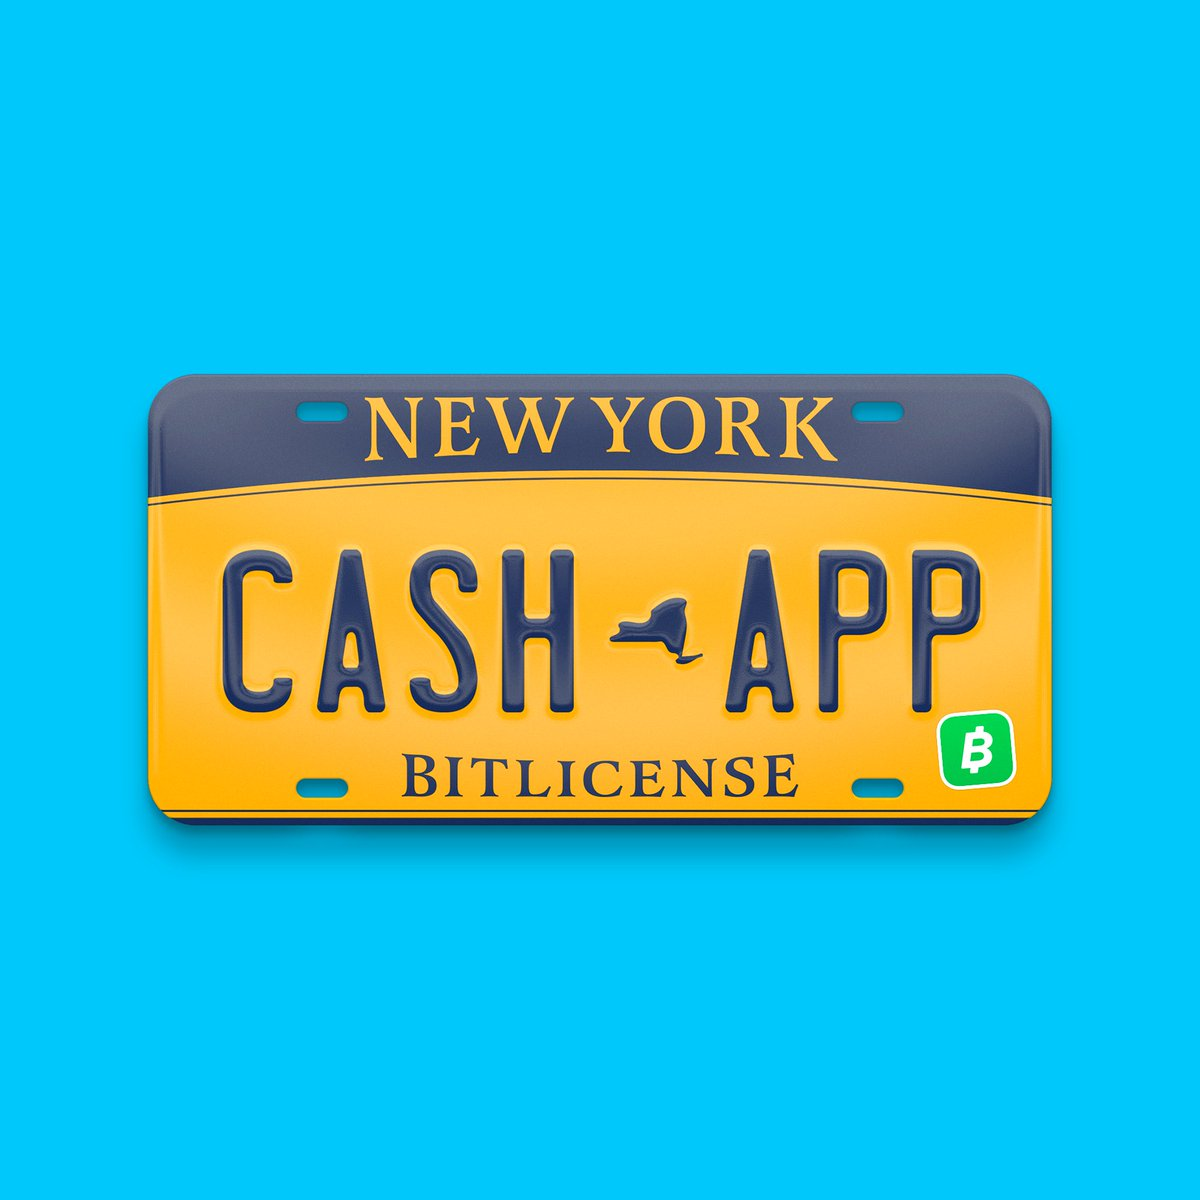 🚨 Our customers in New York state can now buy and sell Bitcoin instantly with Cash App! cash.app/download 🚨